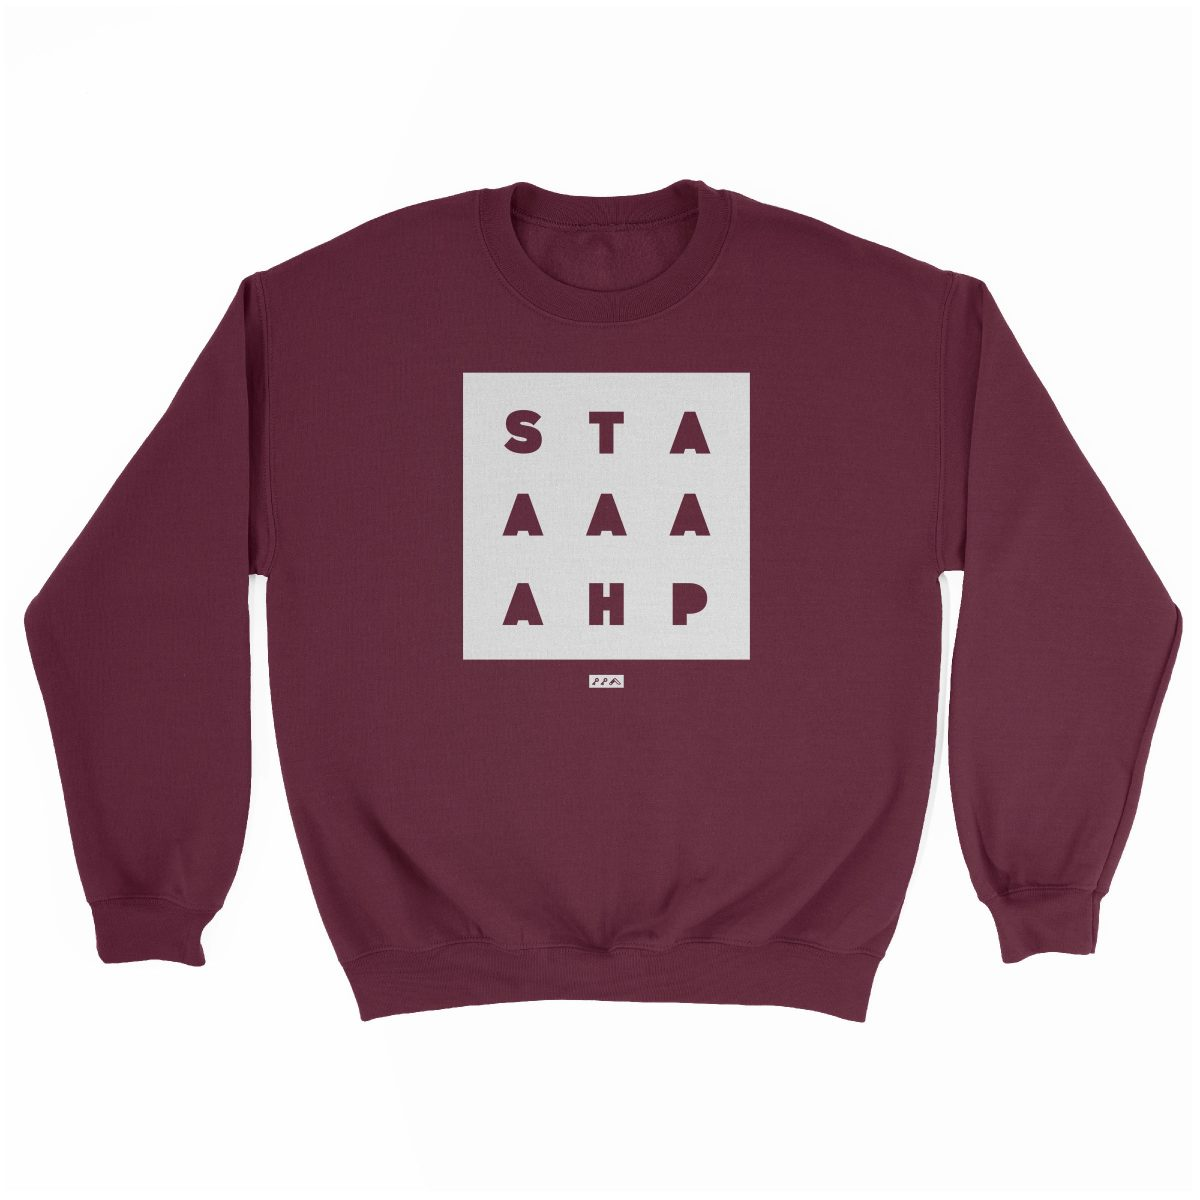 """STAAAAAHP"" funny philly slang sweatshirt in maroon"